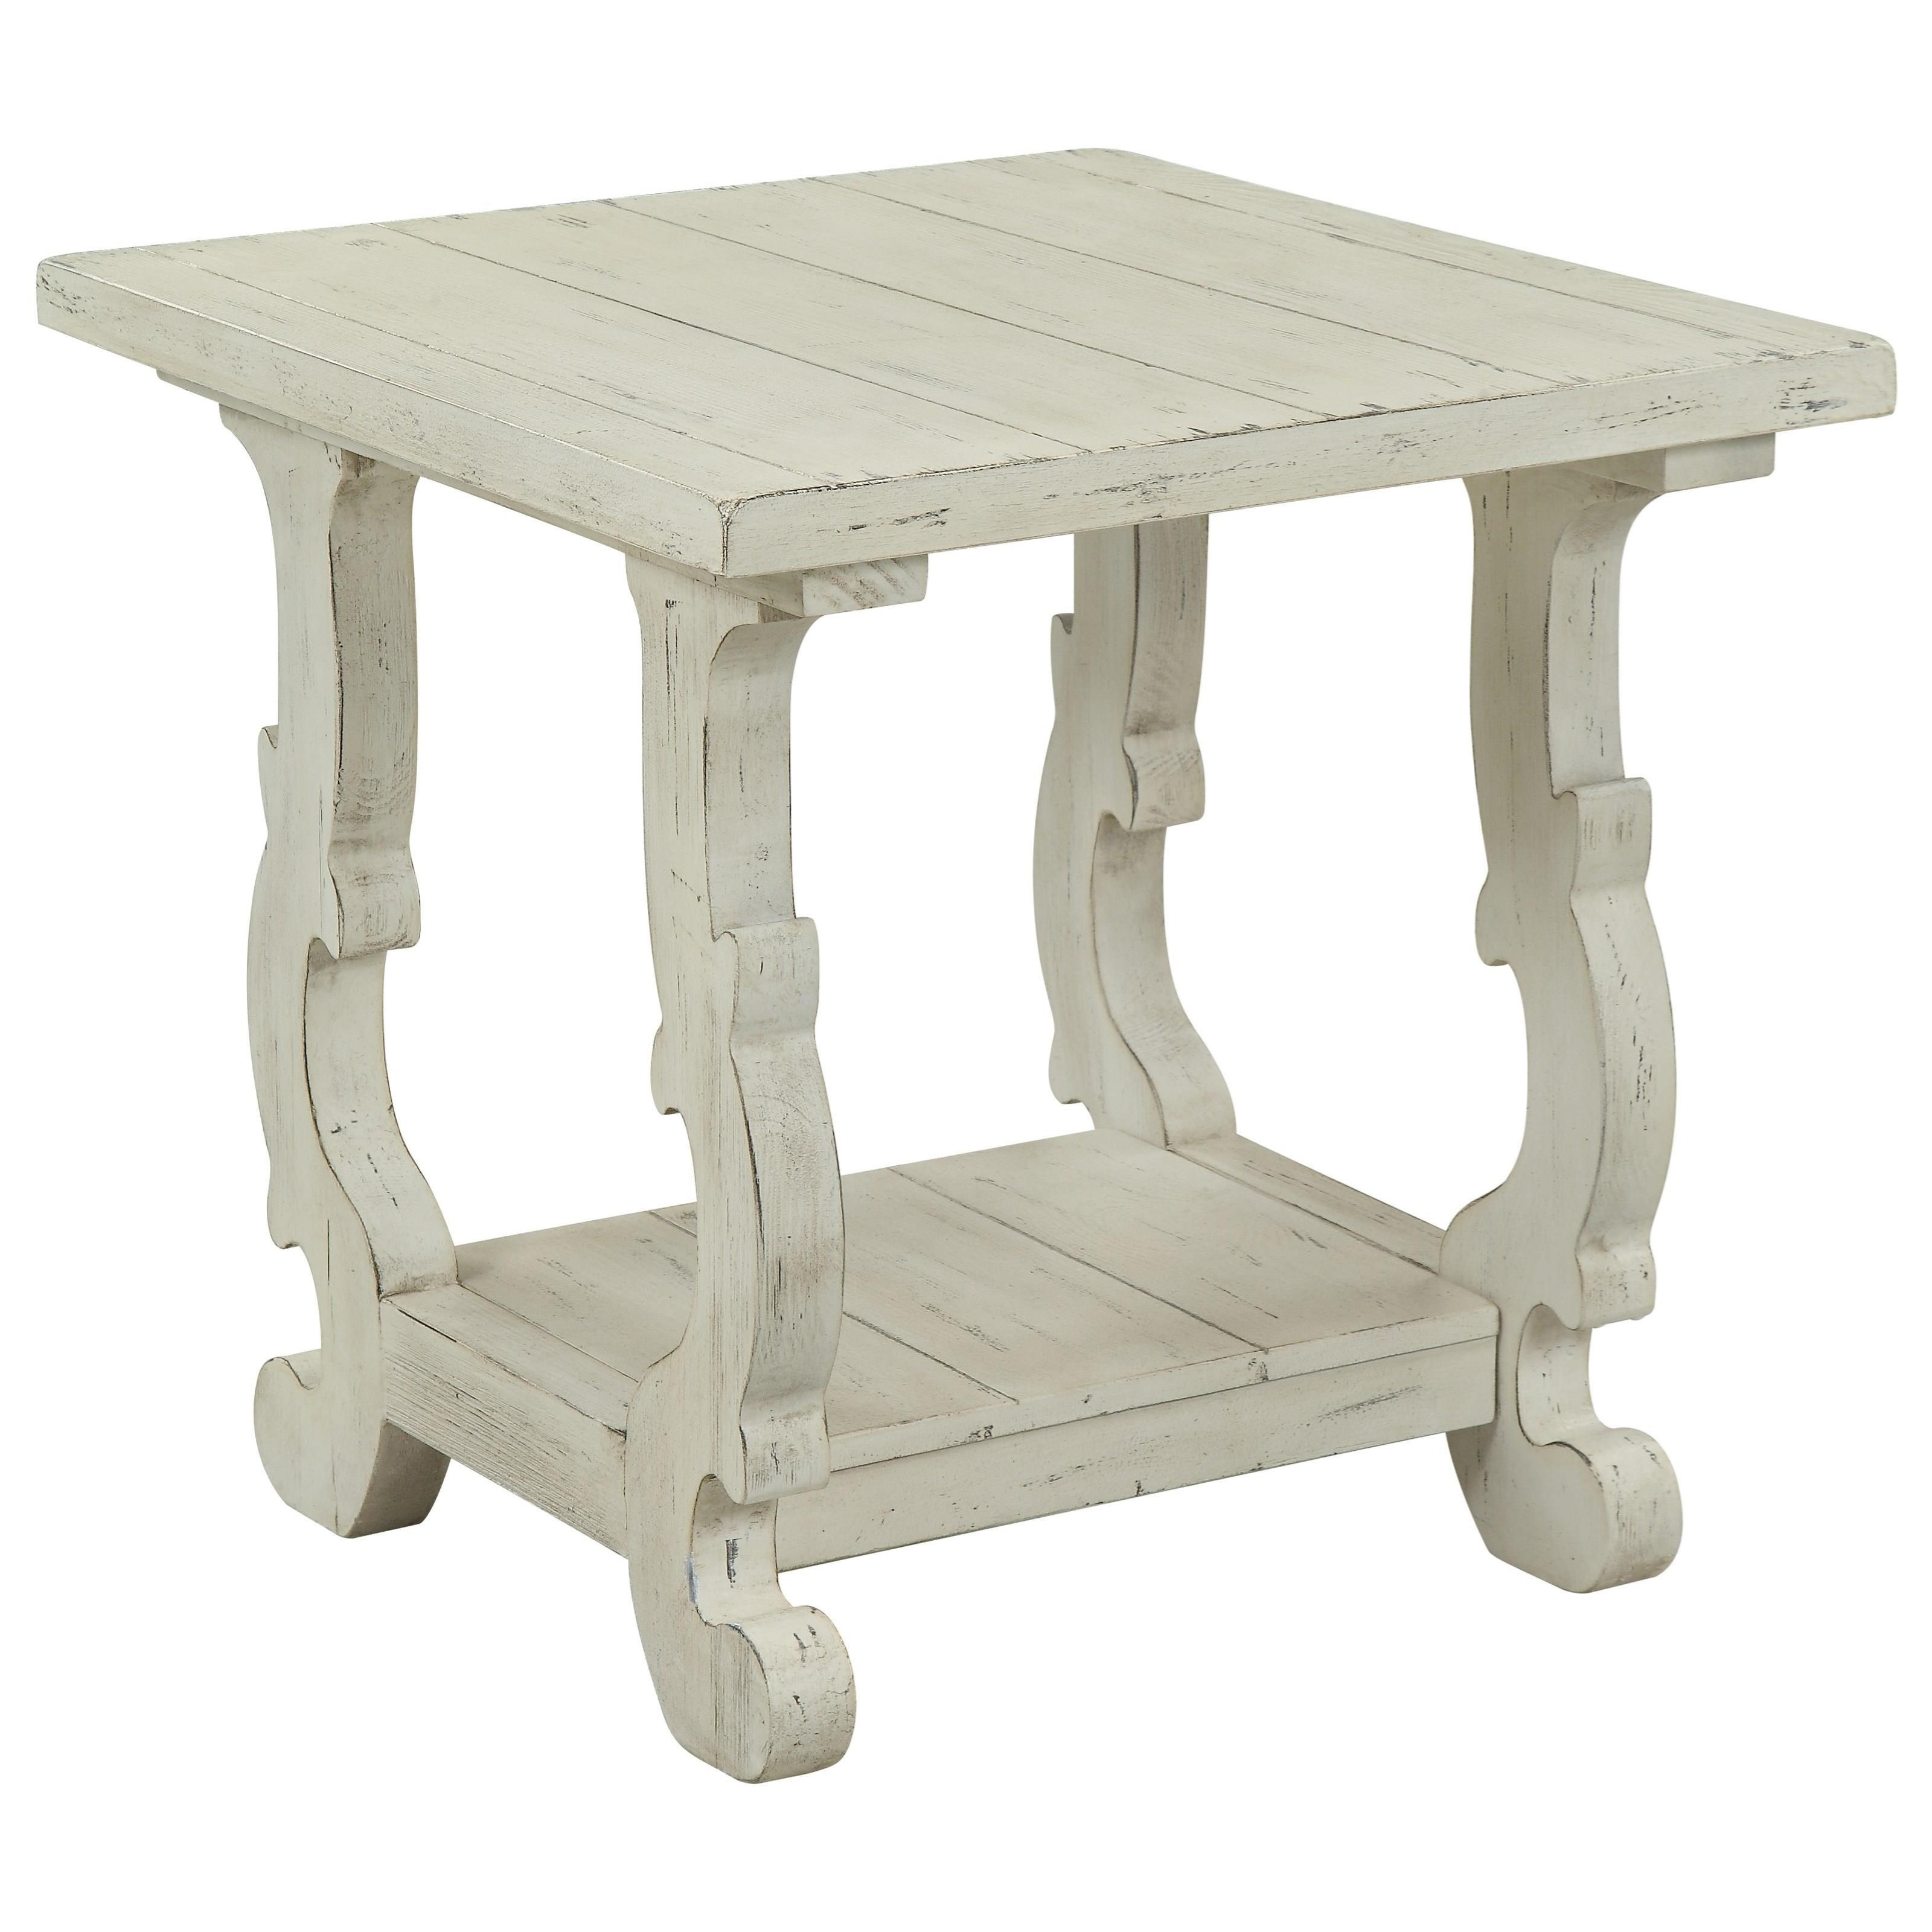 Orchard Park Orchard Park End Table by C2C at Walker's Furniture